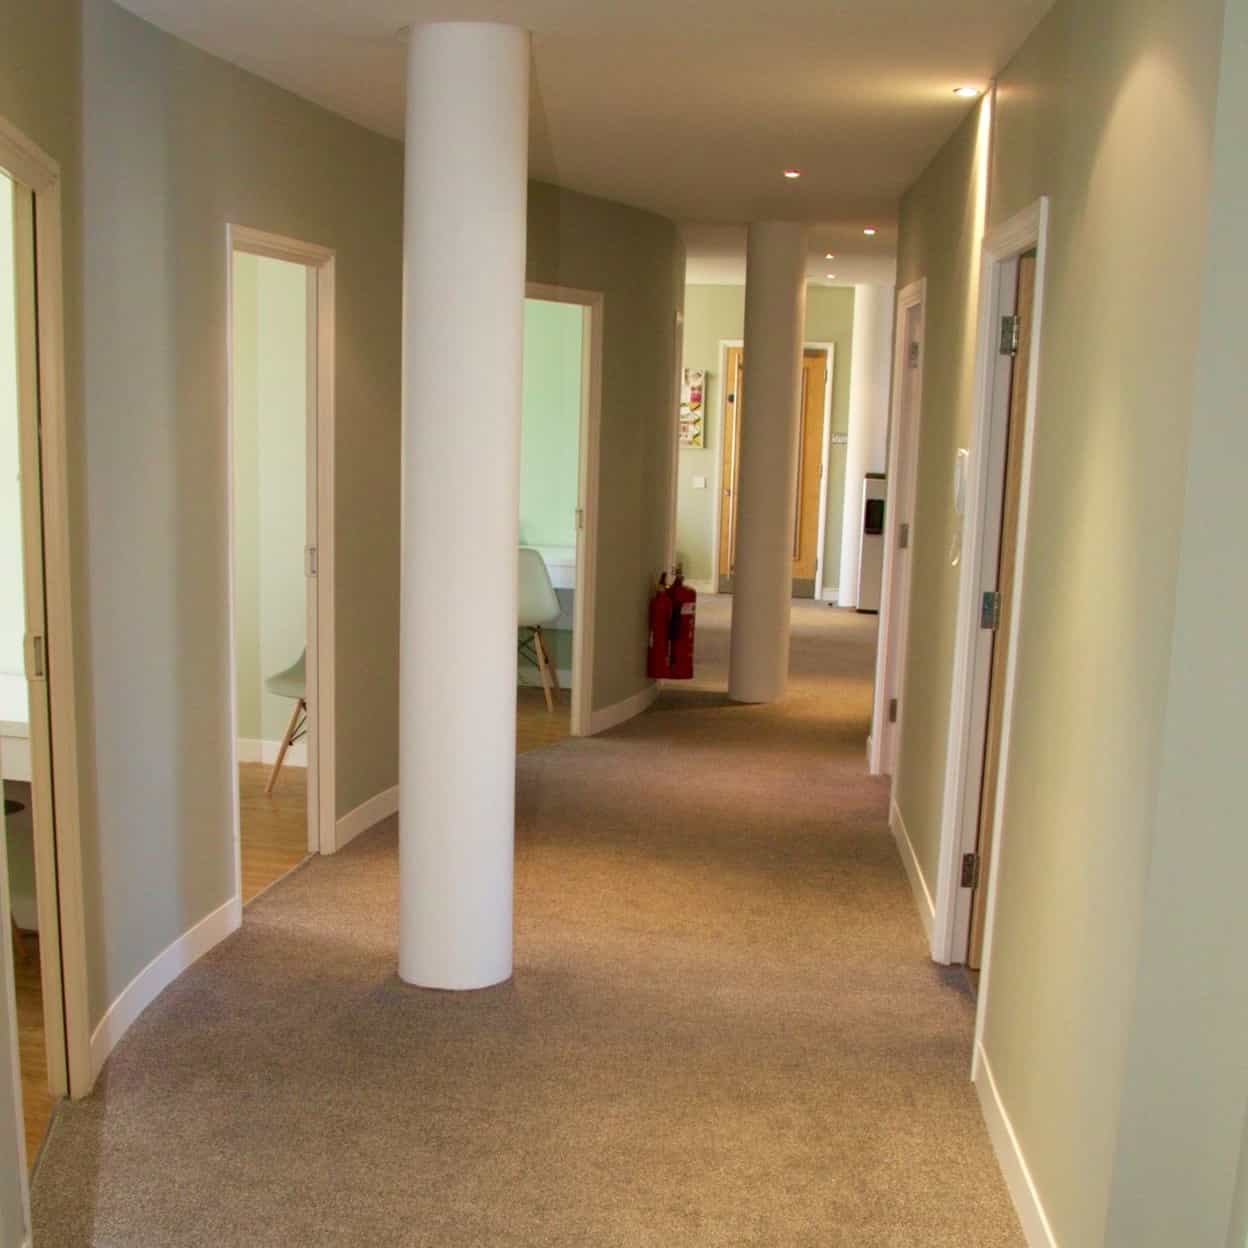 Hallway at the New Southfields Clinic